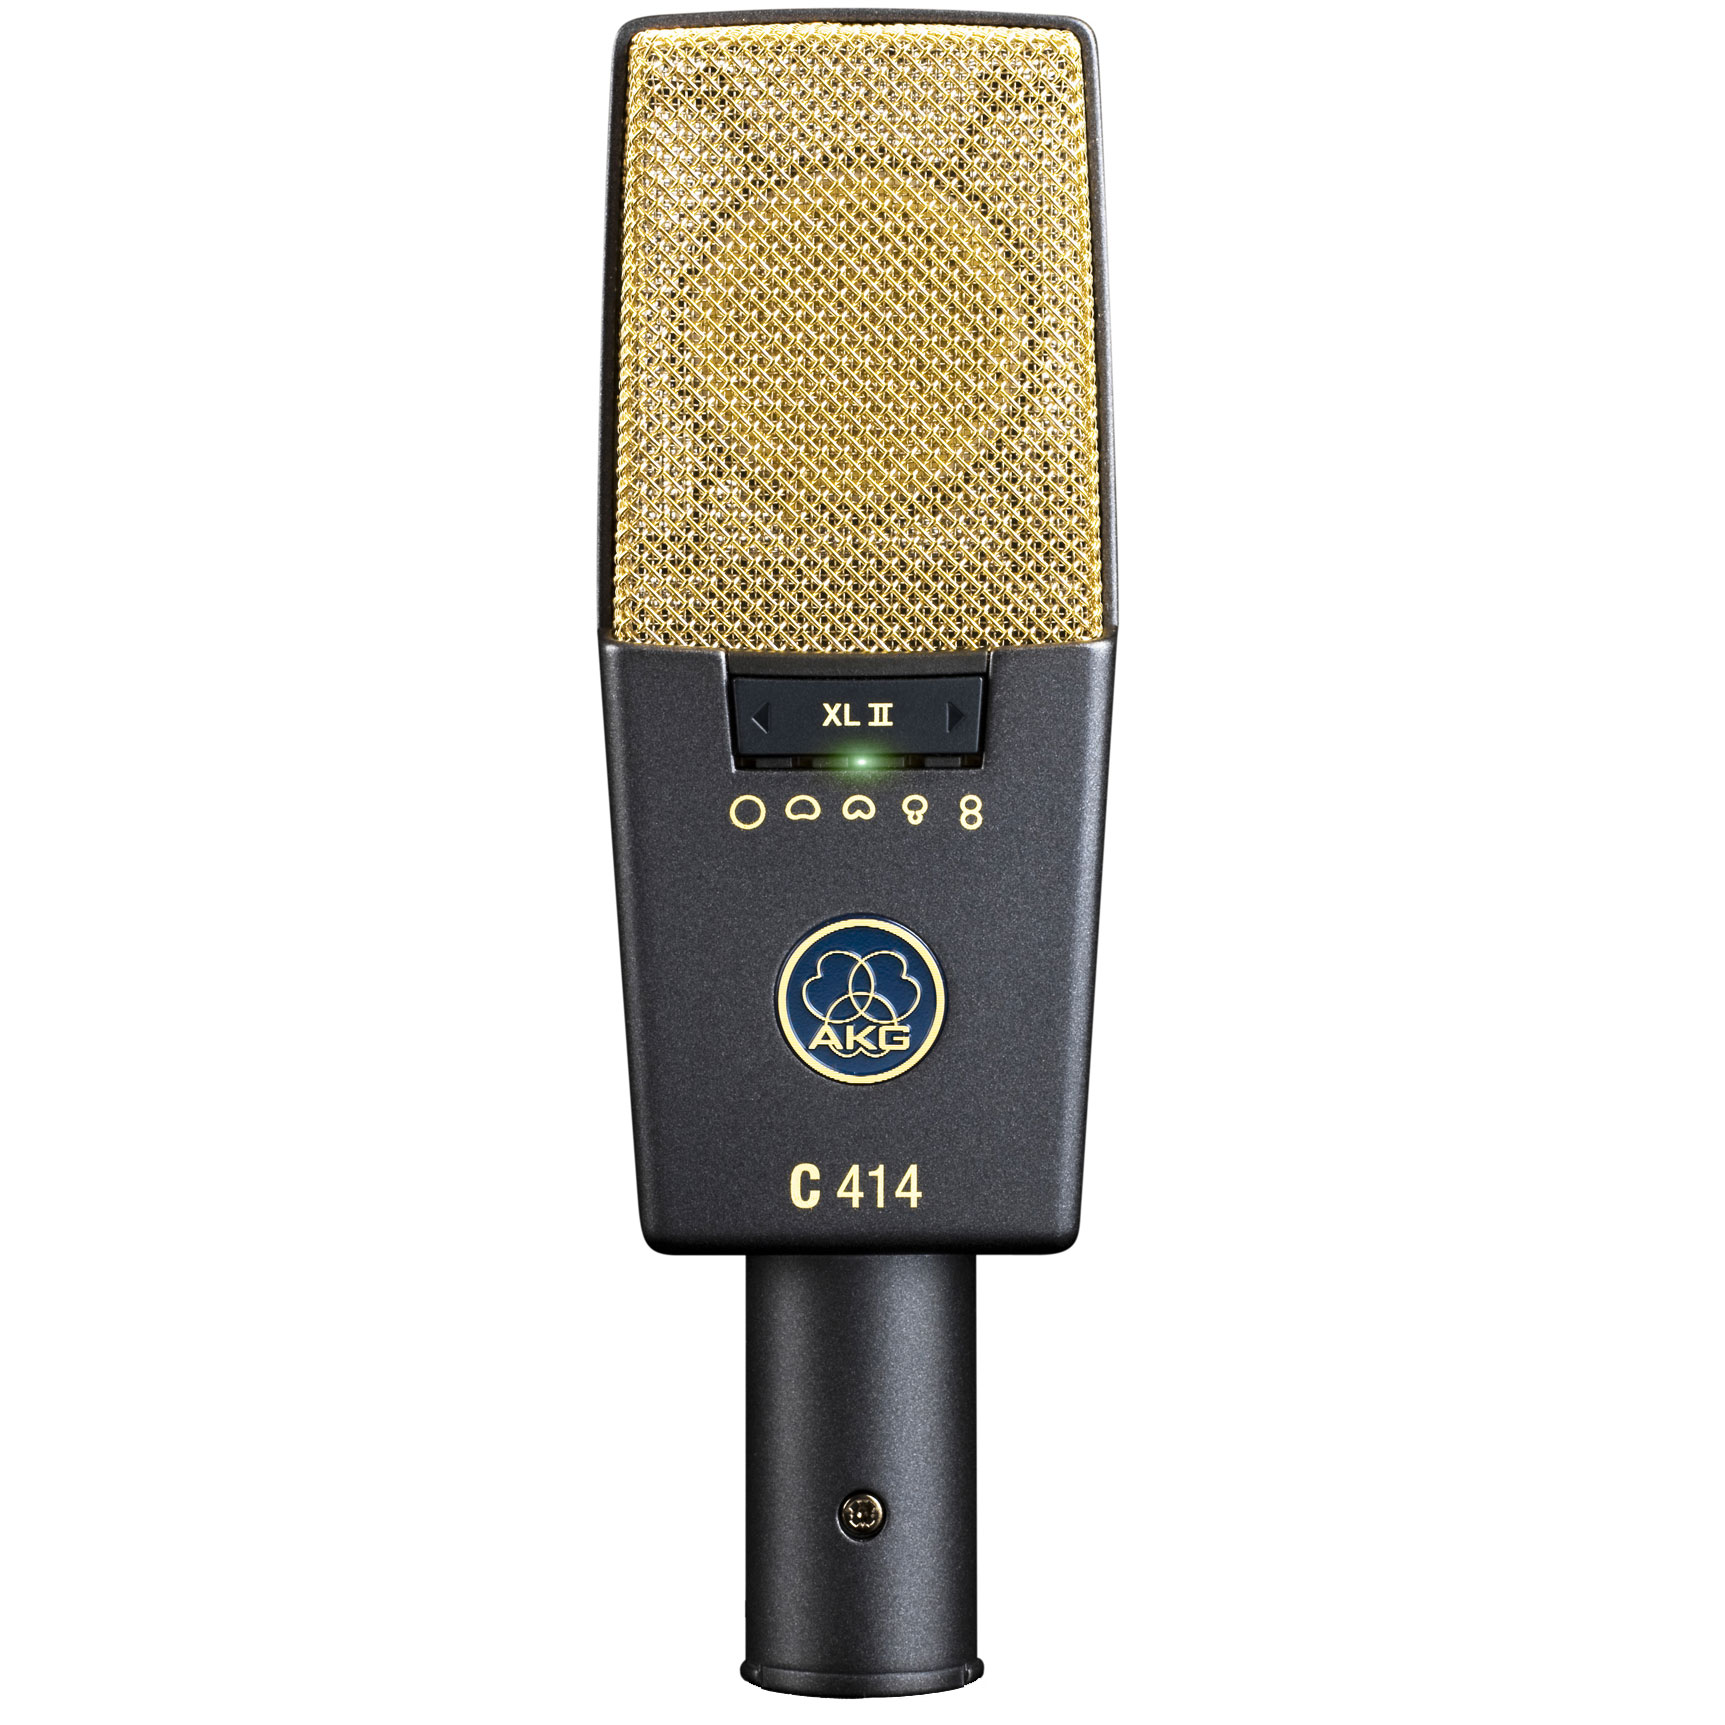 The AKG C414XLII is the latest evolution of AKG's classic studio condensor microphone.